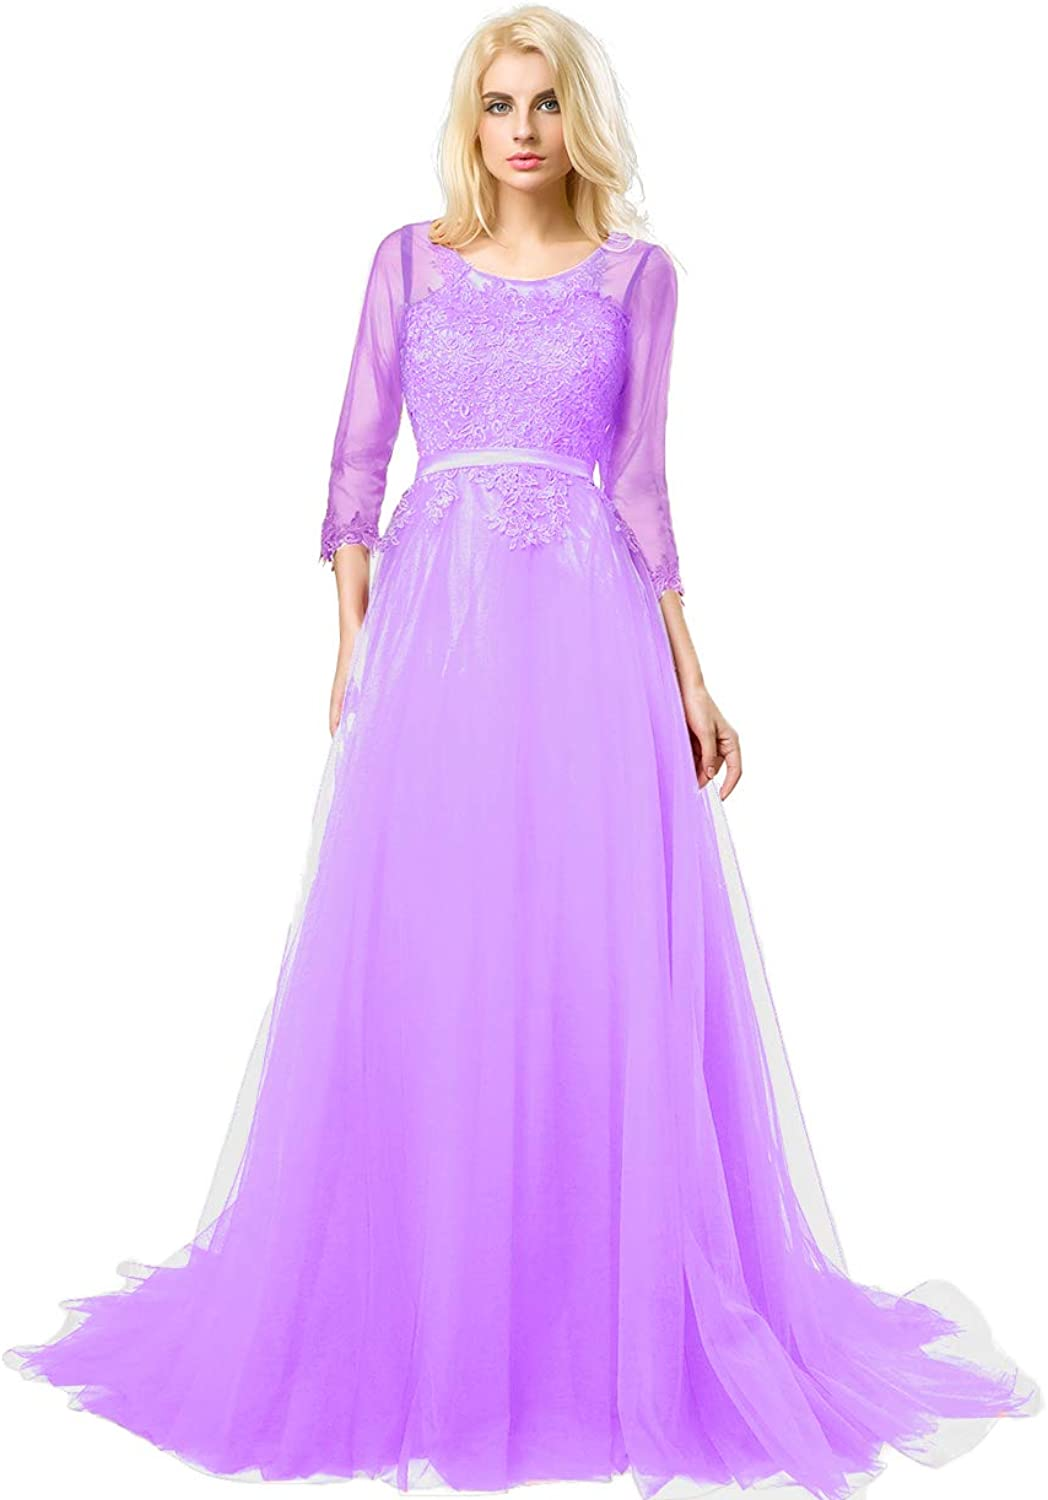 Huifany Women's Prom Dress 3 4 Sleeves Tulle Evening Dresses Long Appliques Lace Formal Gowns